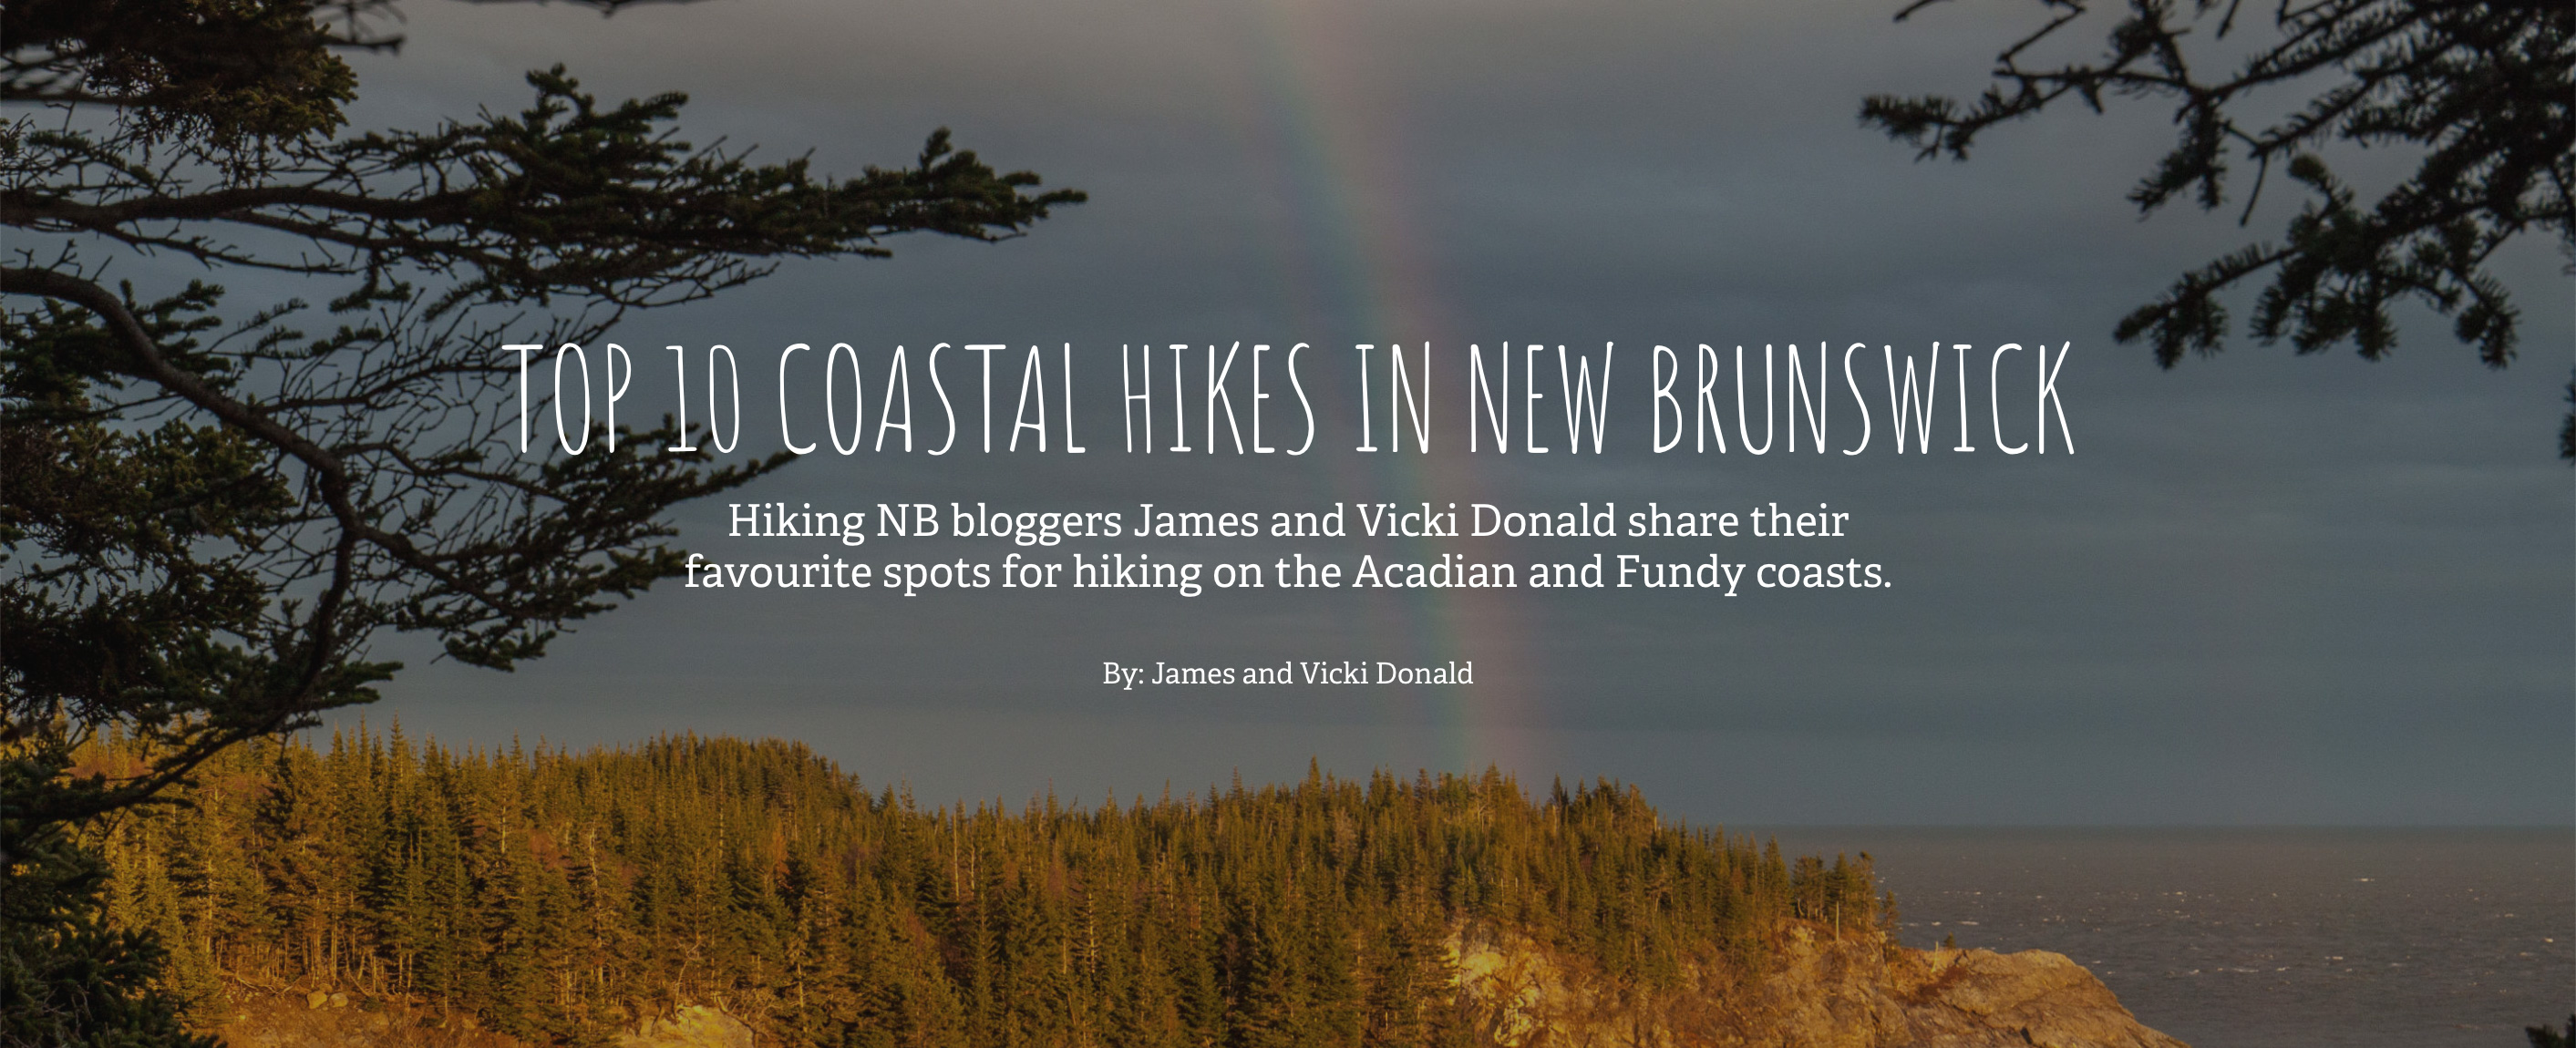 Top 10 Coastal Hikes Blog Post